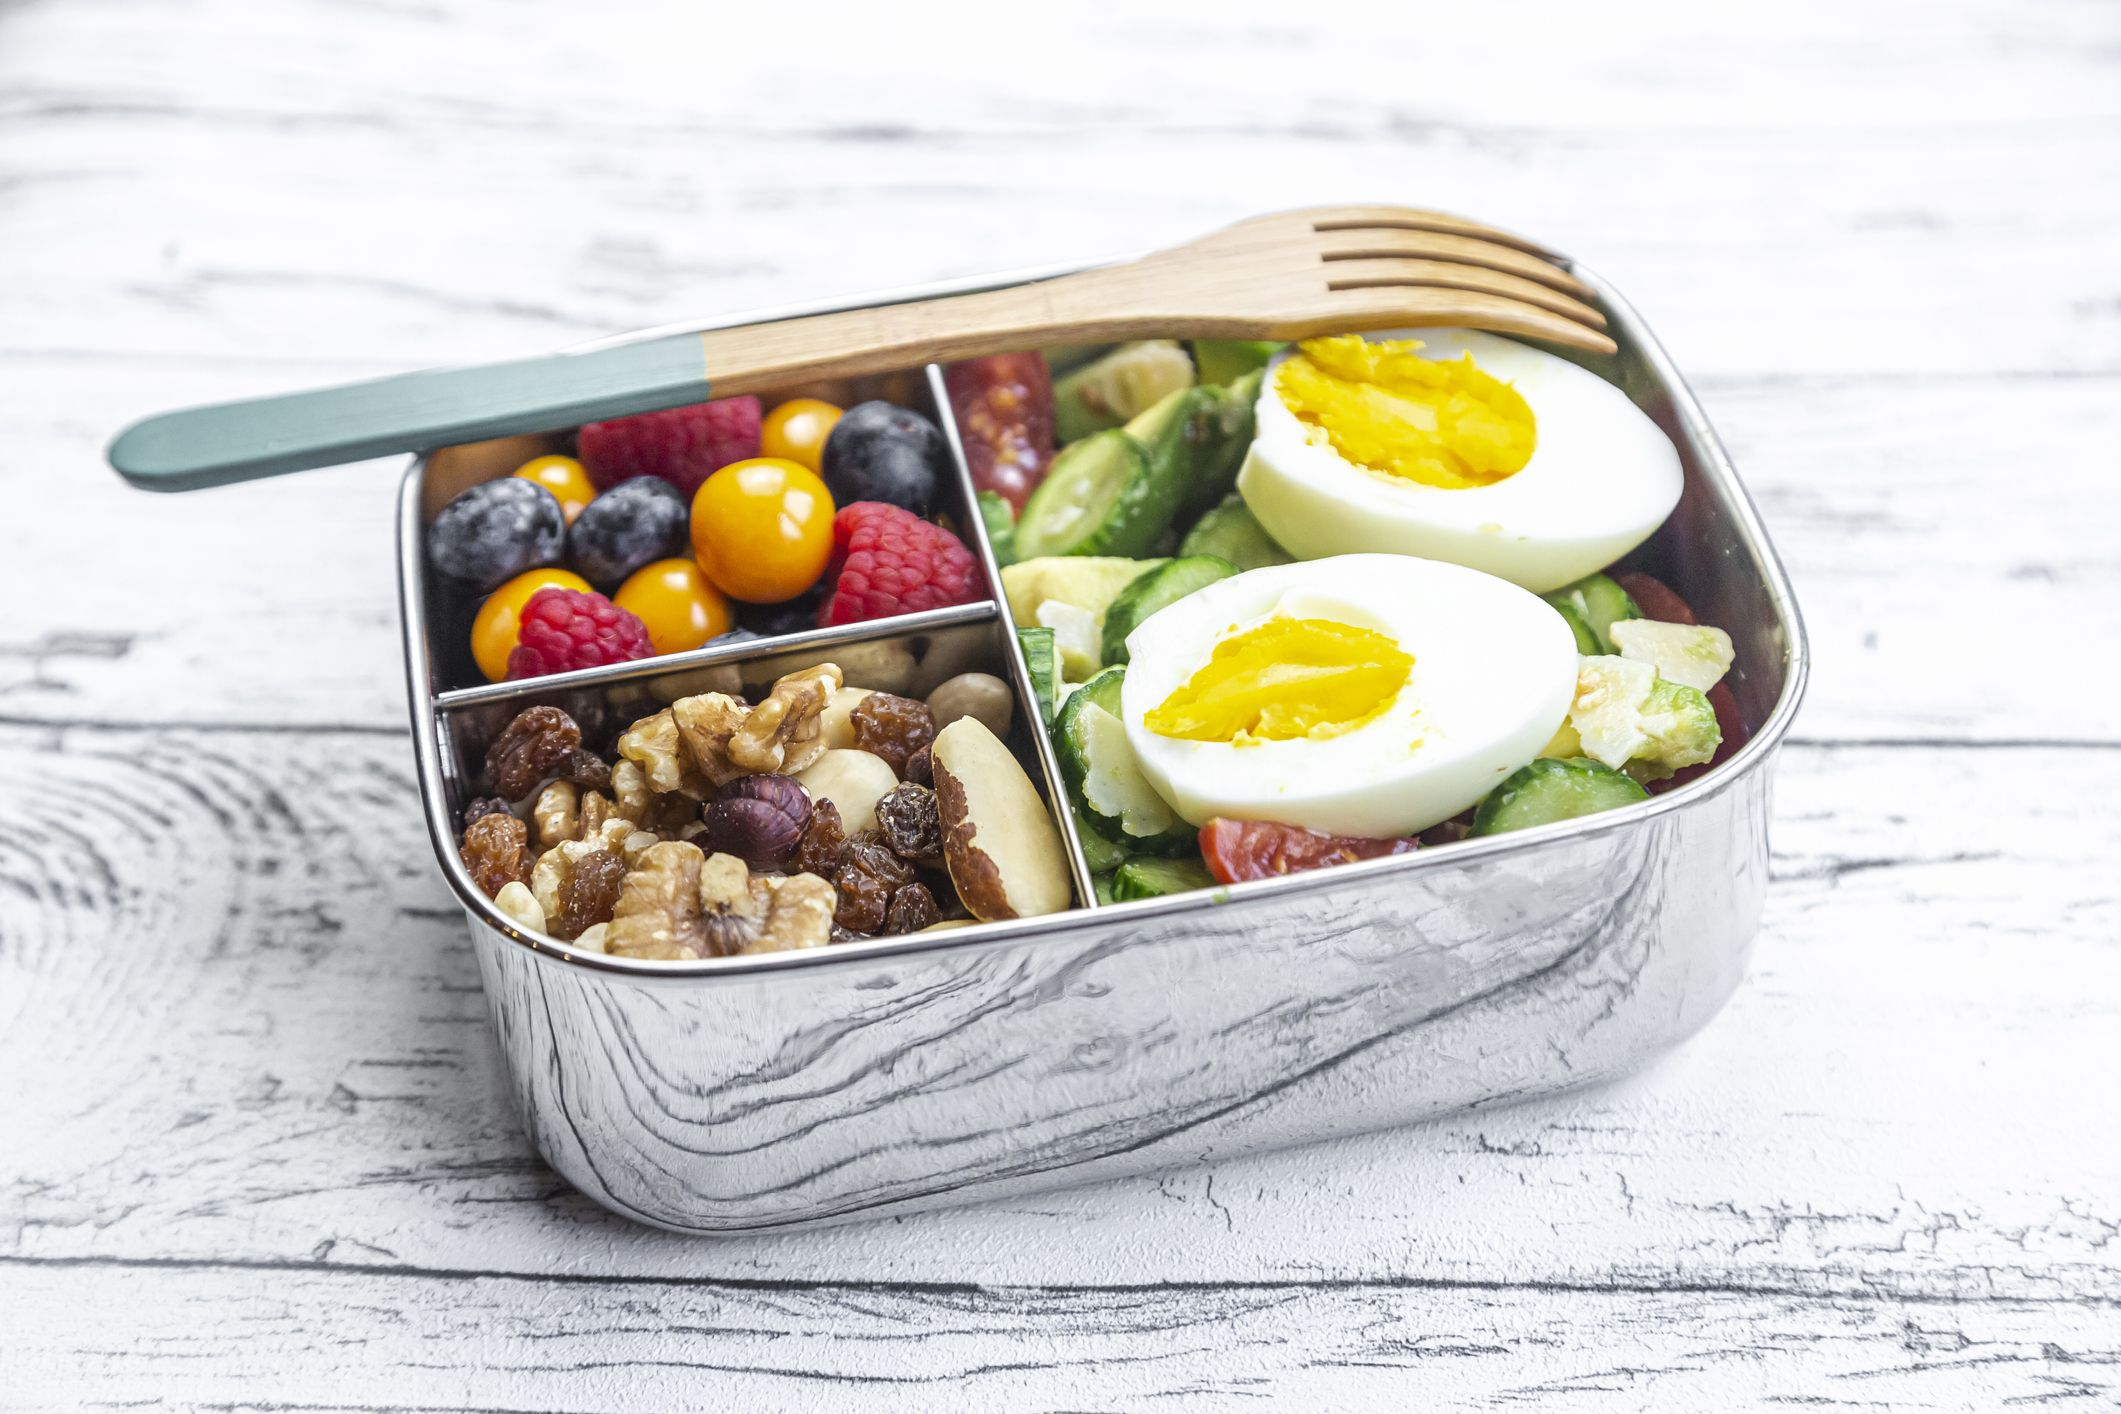 healthy lunch box with trail mix and berries royalty free image 1624909151 1